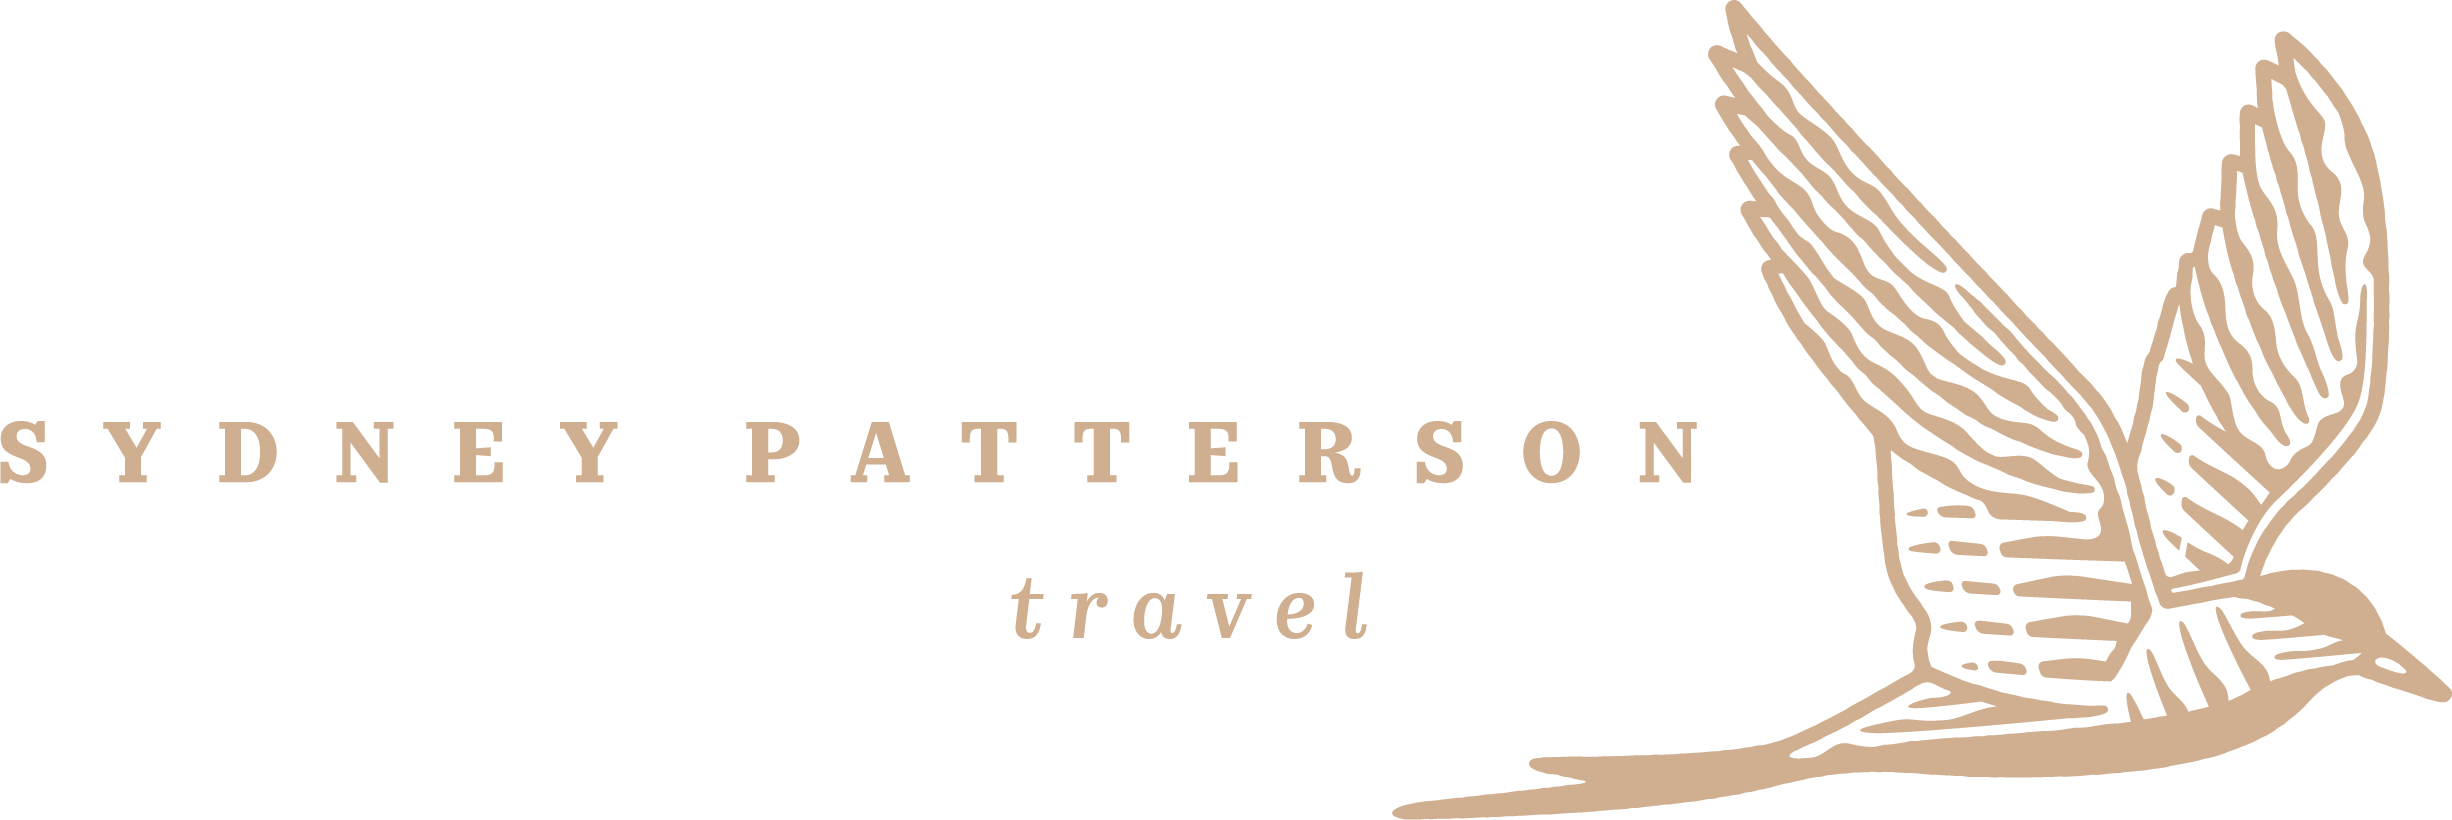 Sydney Patterson Travel